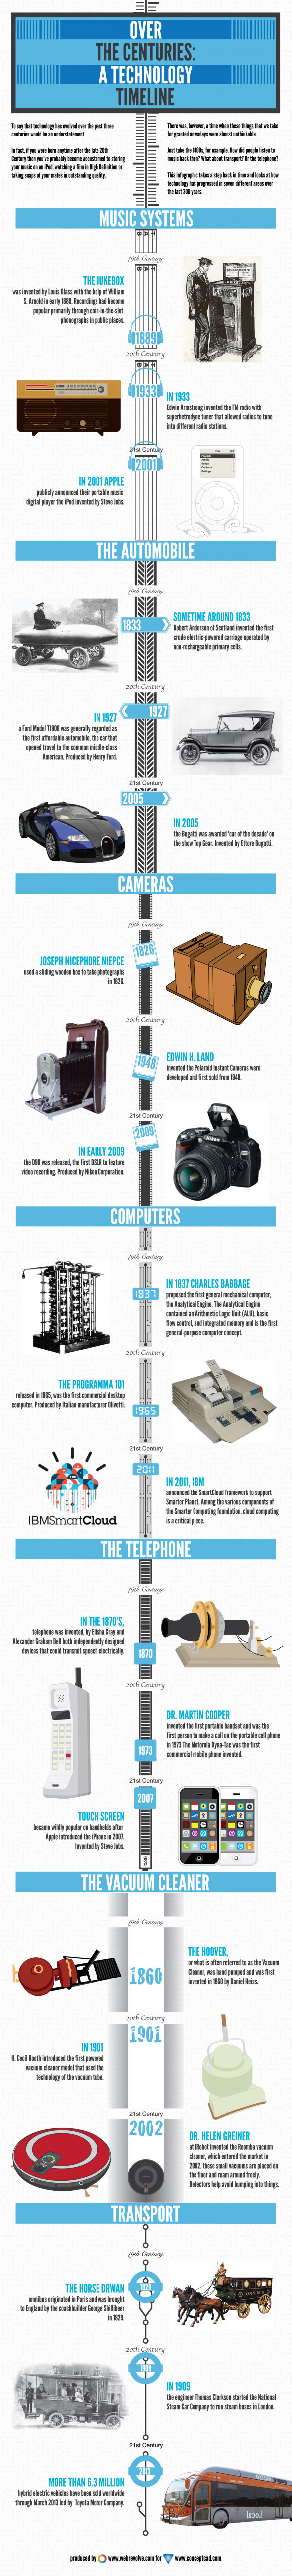 Over The Centuries: A Technology Timeline